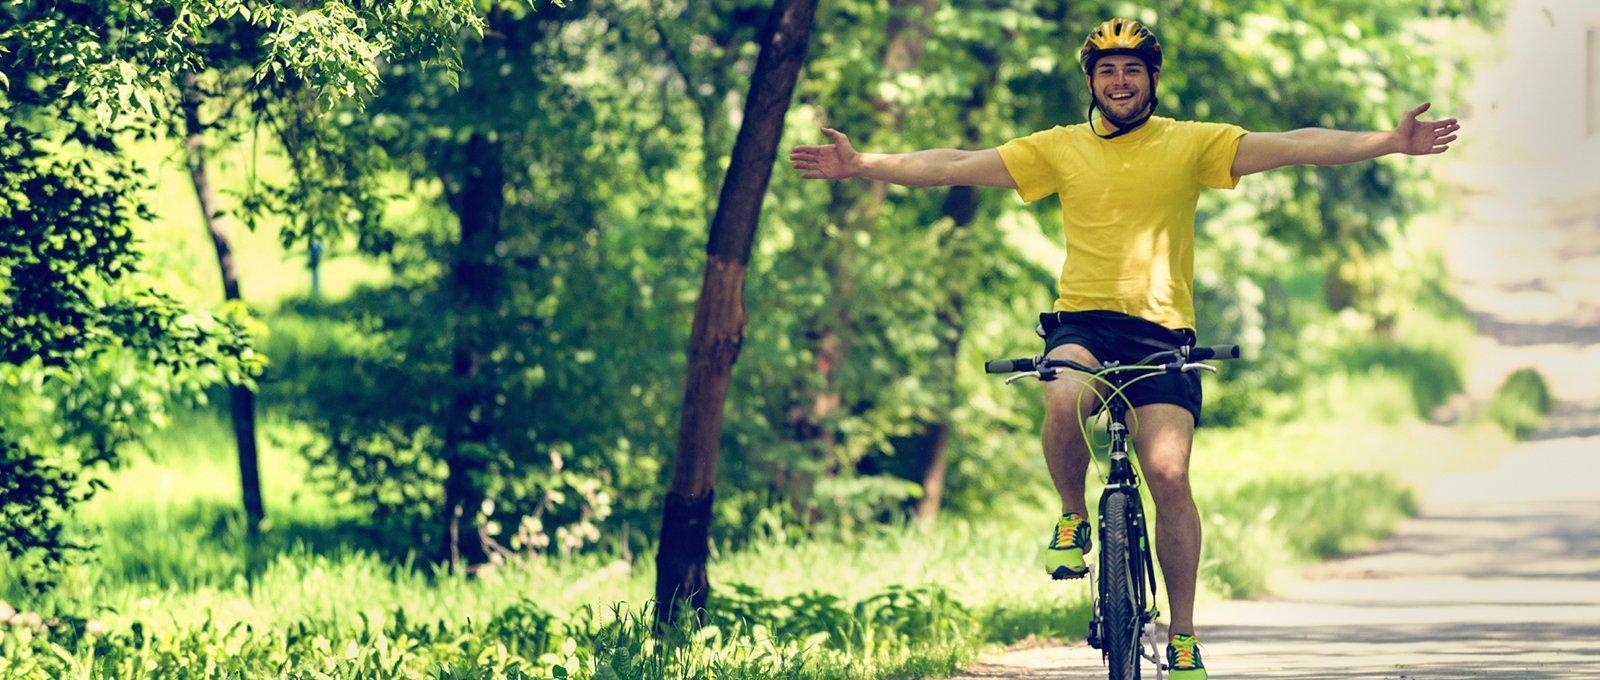 Photo of man riding bike on sunny day